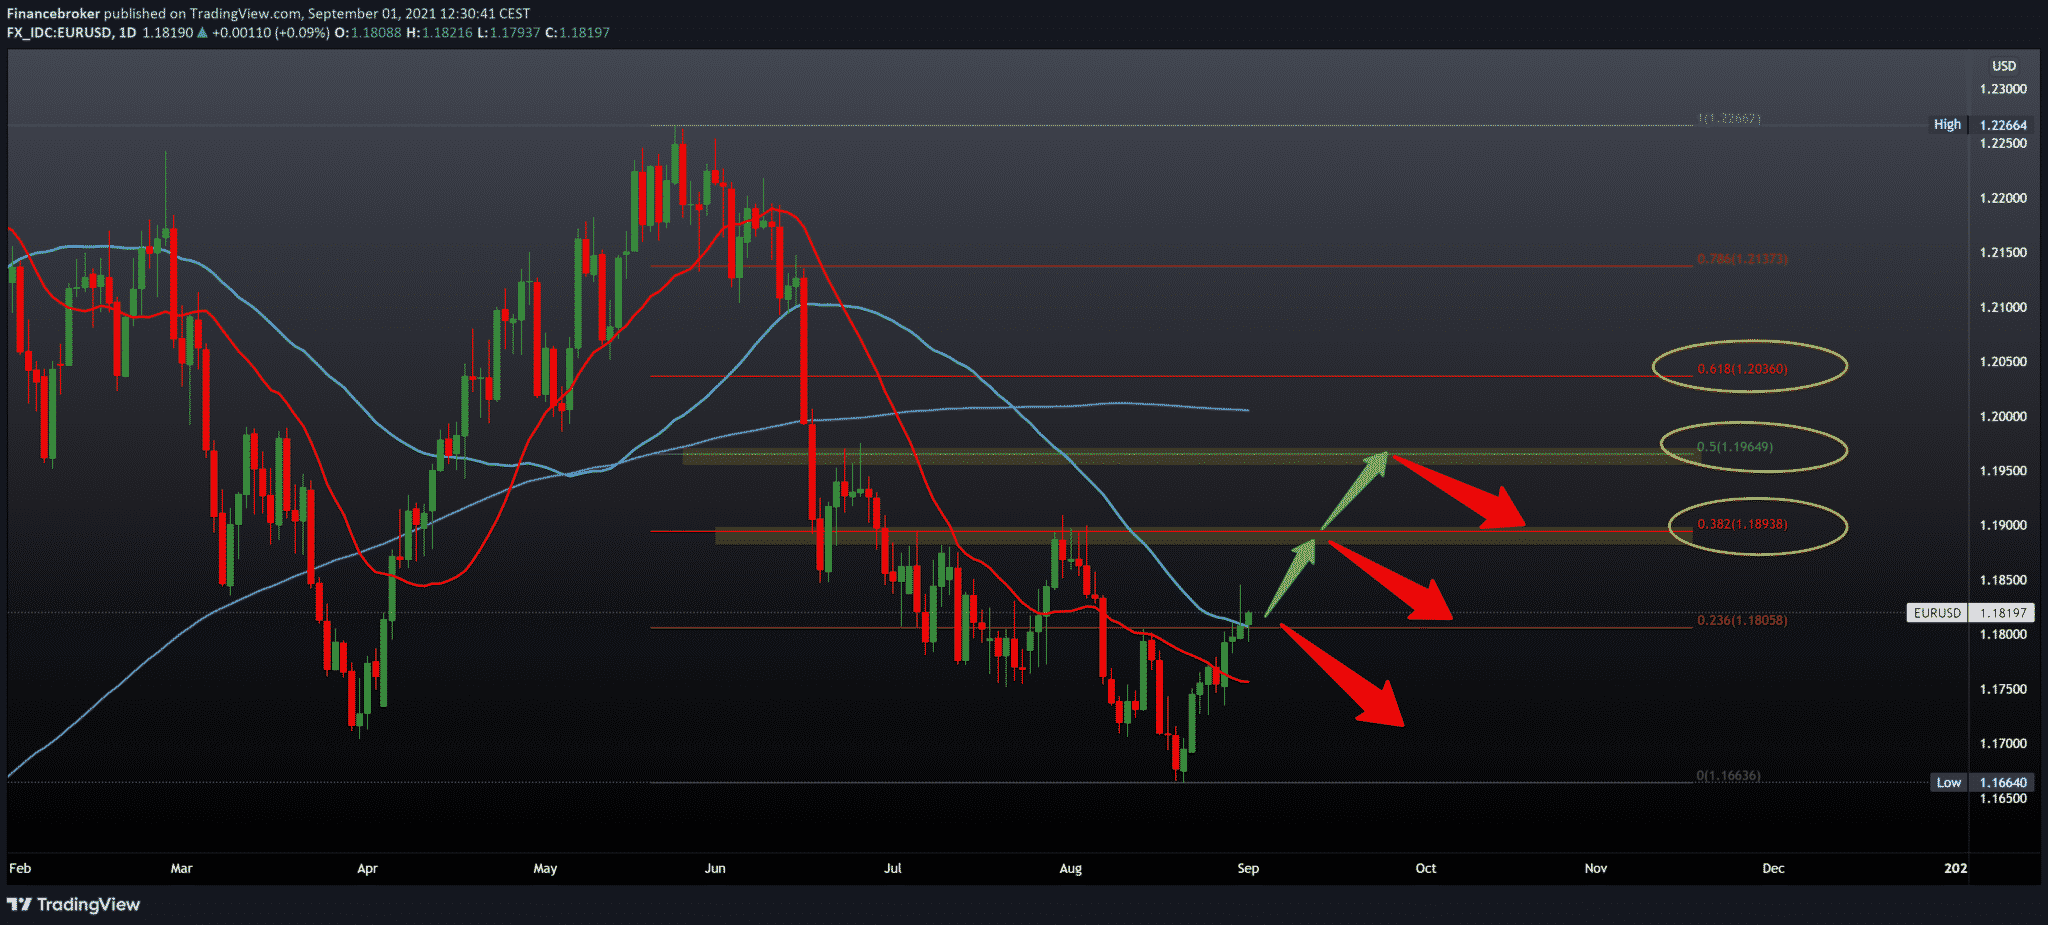 EURUSD and GBPUSD Forecast: The Growth Potential